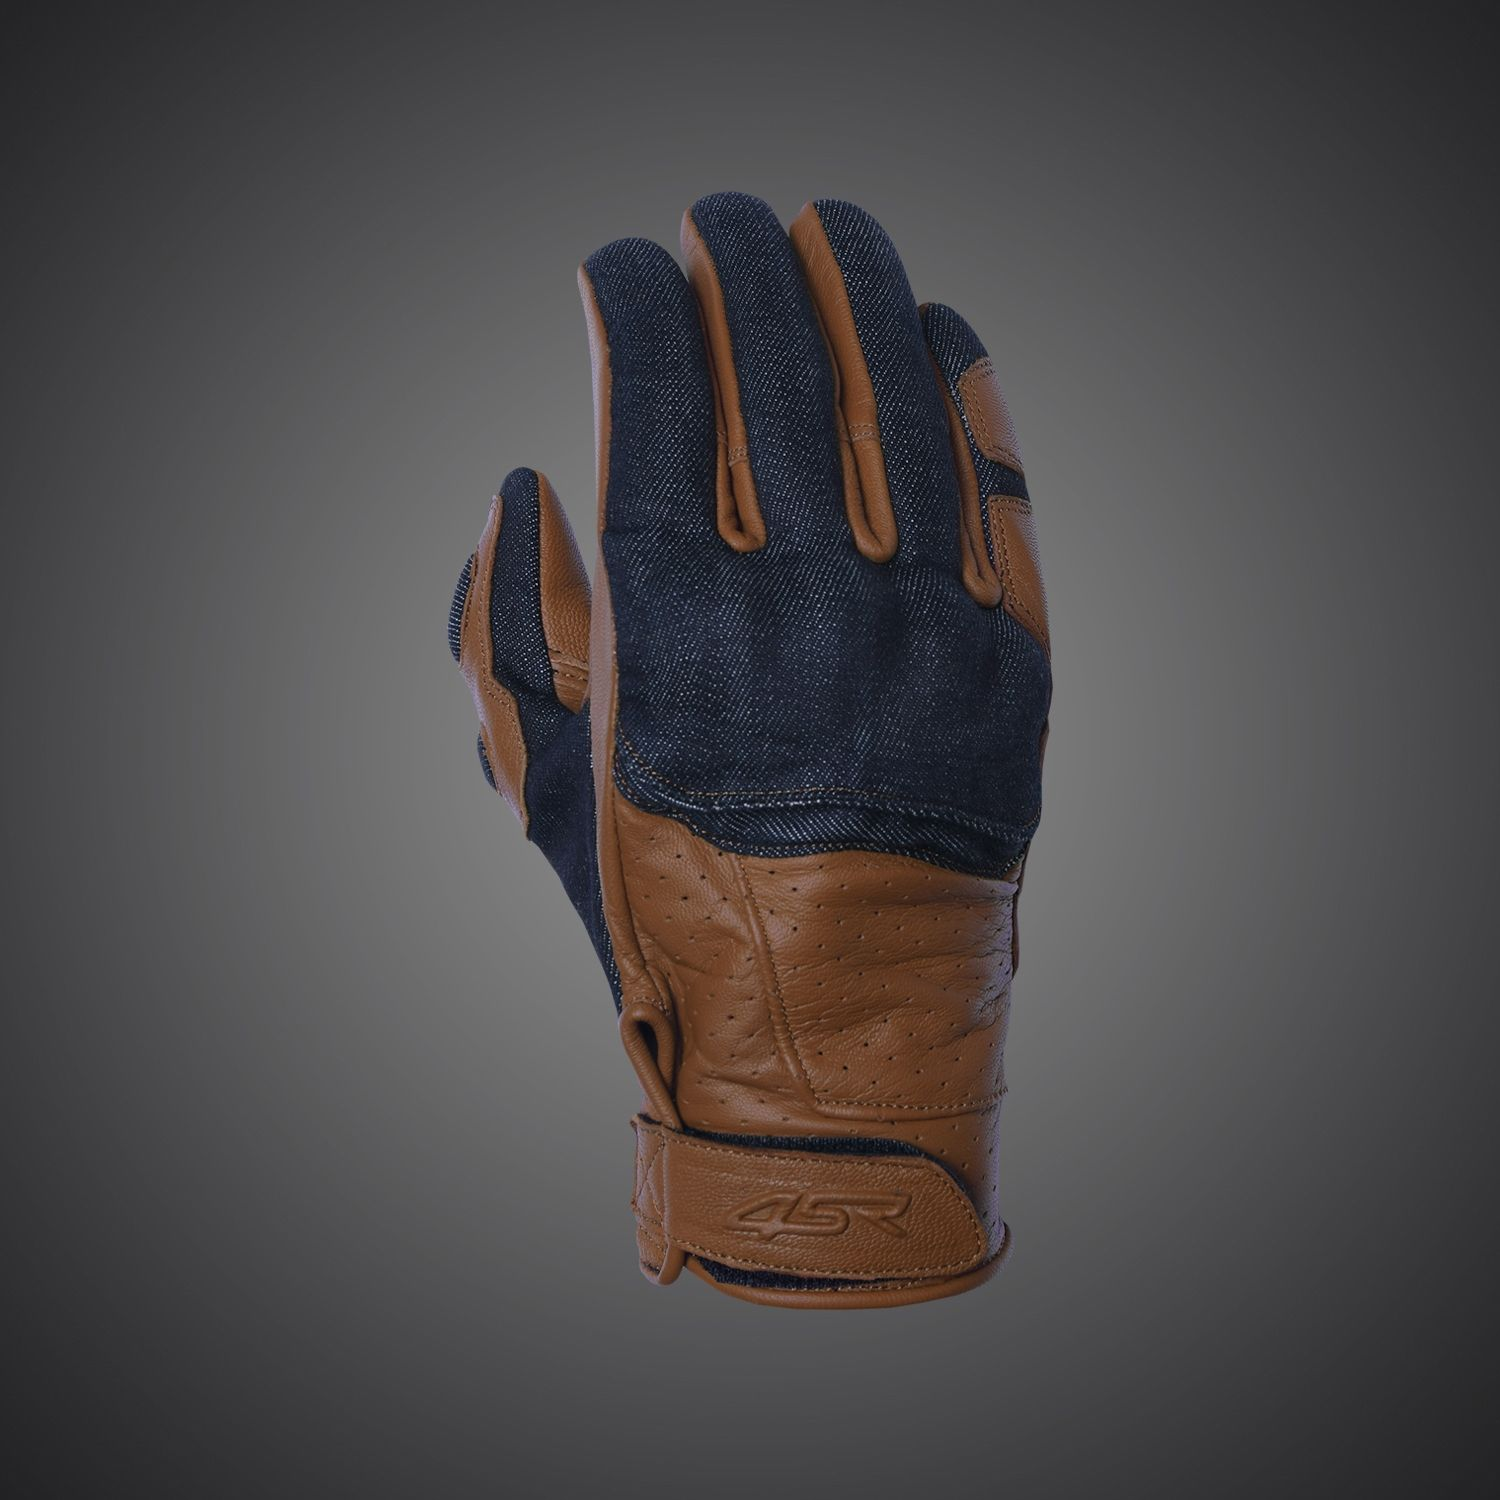 Triumph motorcycle leather gloves - The First Motorbike Gloves Created For Caferacer Scrambler Made Of Soft Leather And Denim